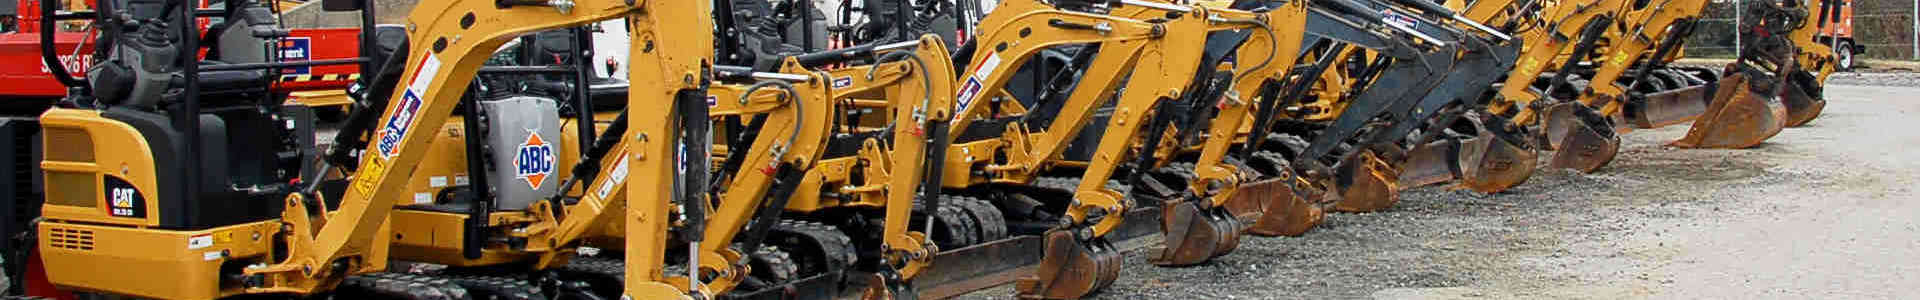 Rent Construction Tools & Equipment in Catonsville MD, Jessup, Towson, Abingdon